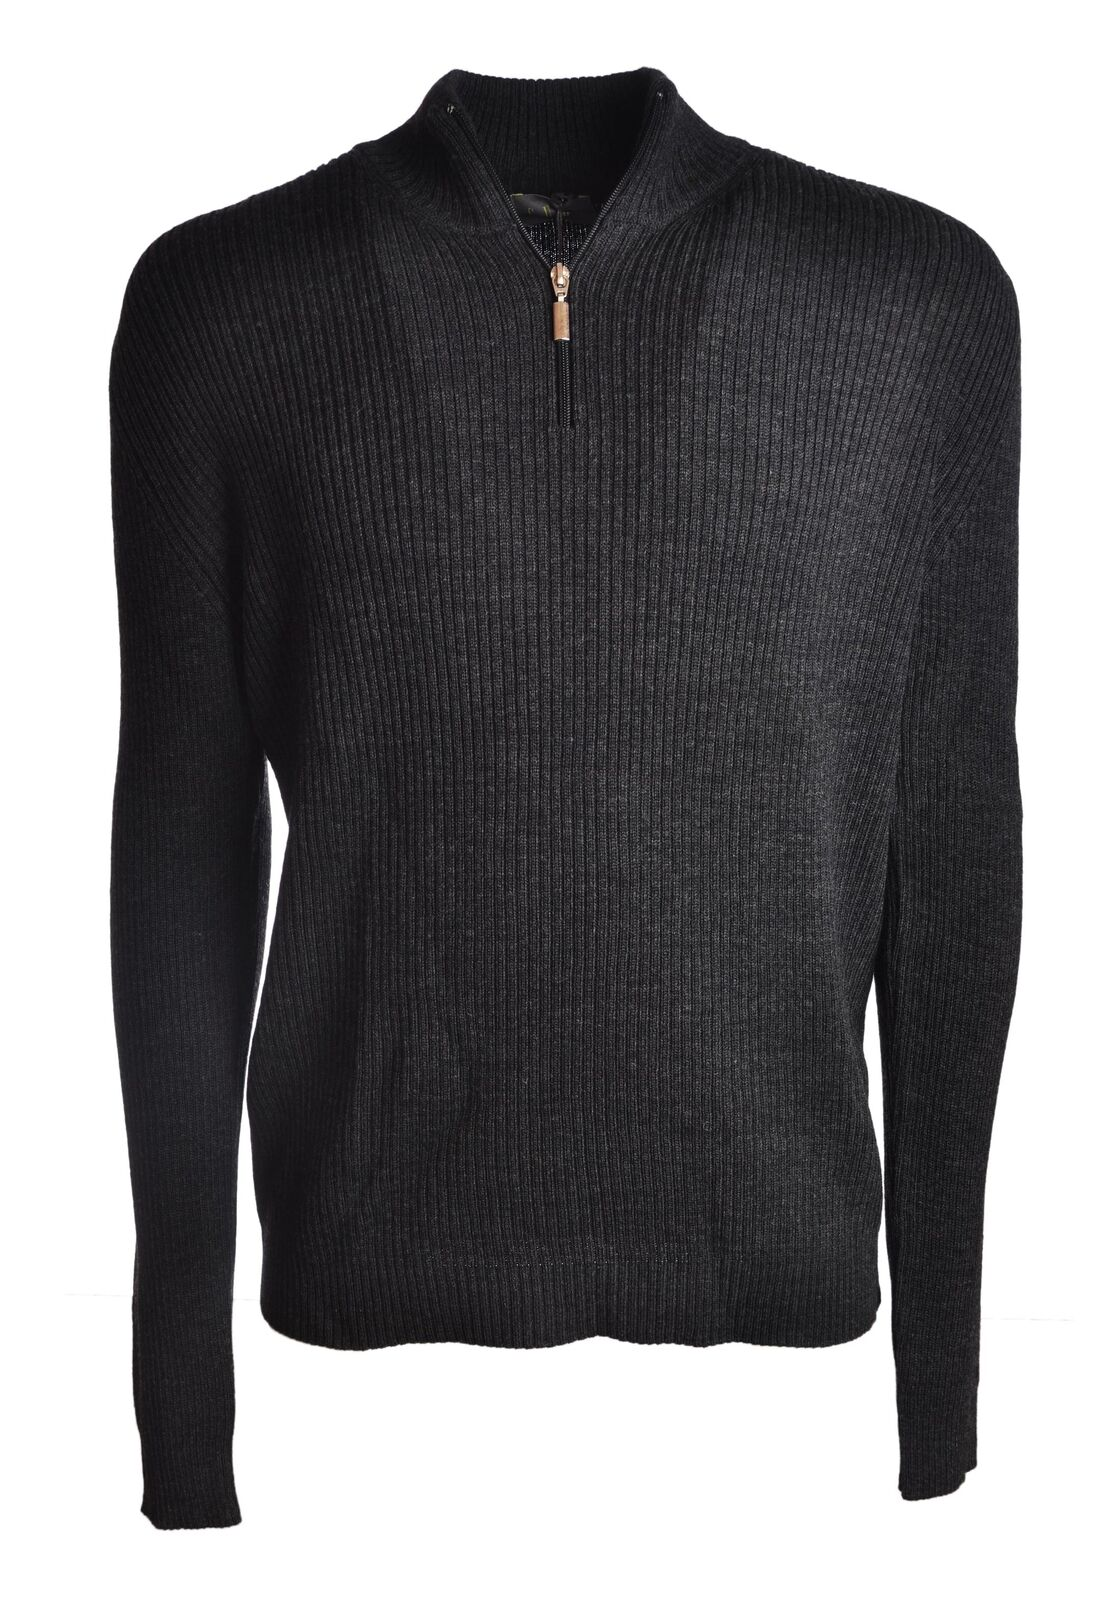 Cube  -  Sweaters - Male - Grey - 4366626A184251